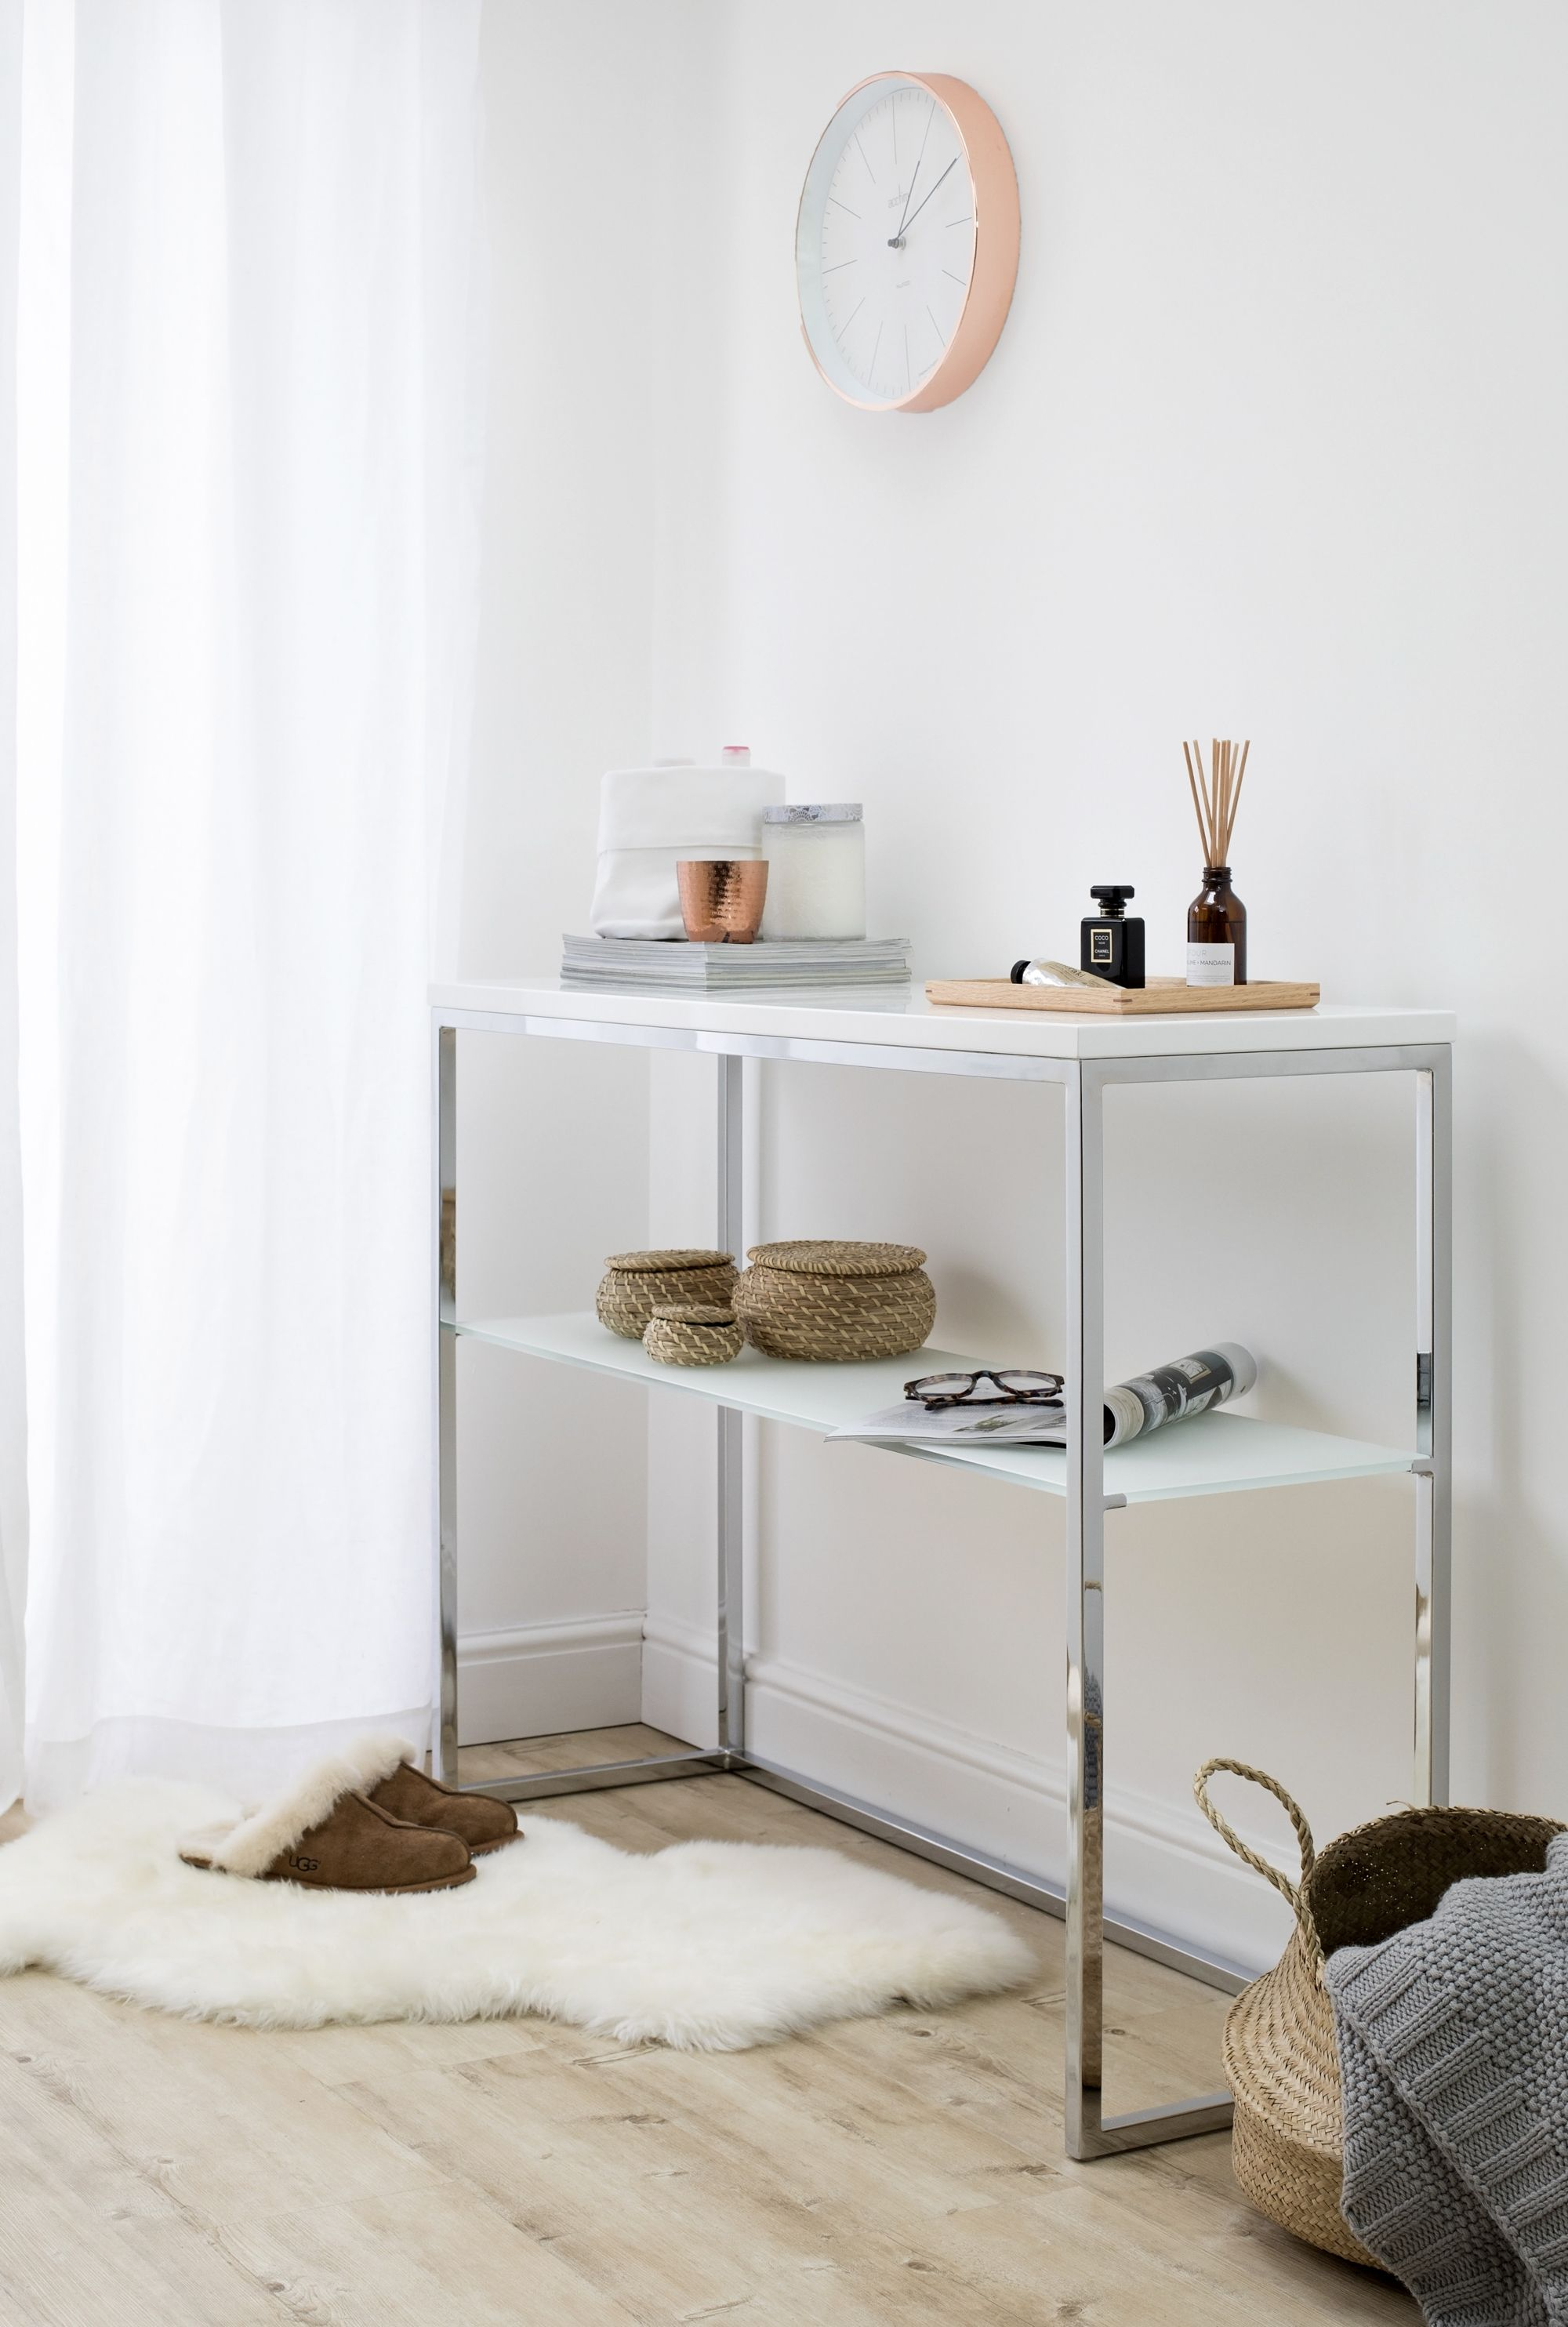 Incroyable White Gloss And Chrome Dressing Table Console Table. Style With Natural  Textures To Balance Out The Gloss Of The Console And To Create A Dream  Vanity Unit